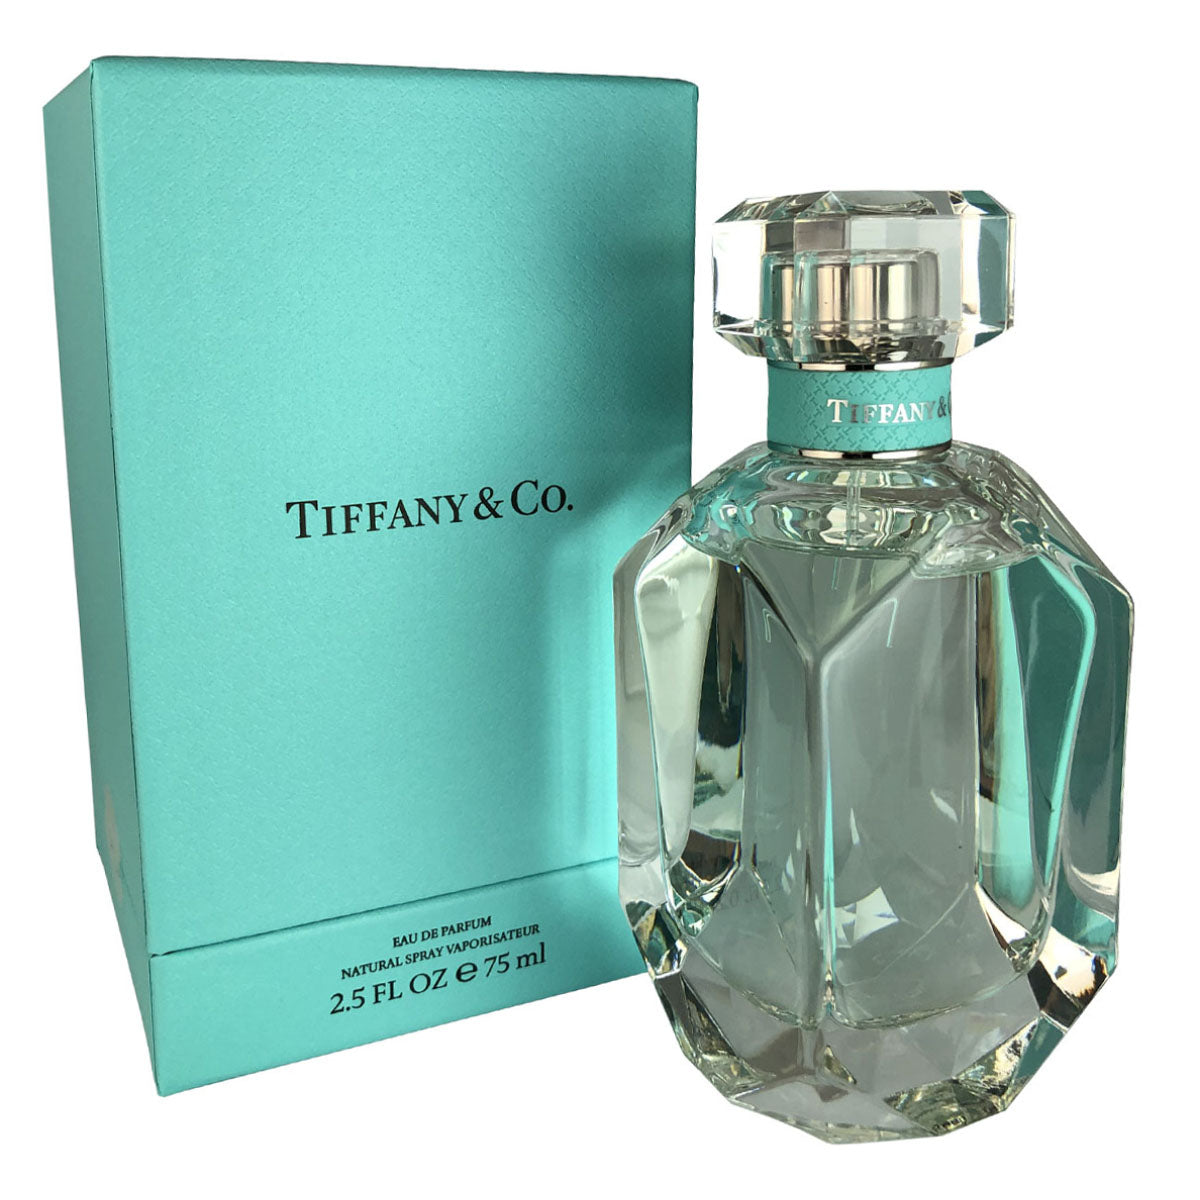 Tiffany & Co. Eau Du Parfum Spray 2.5 oz